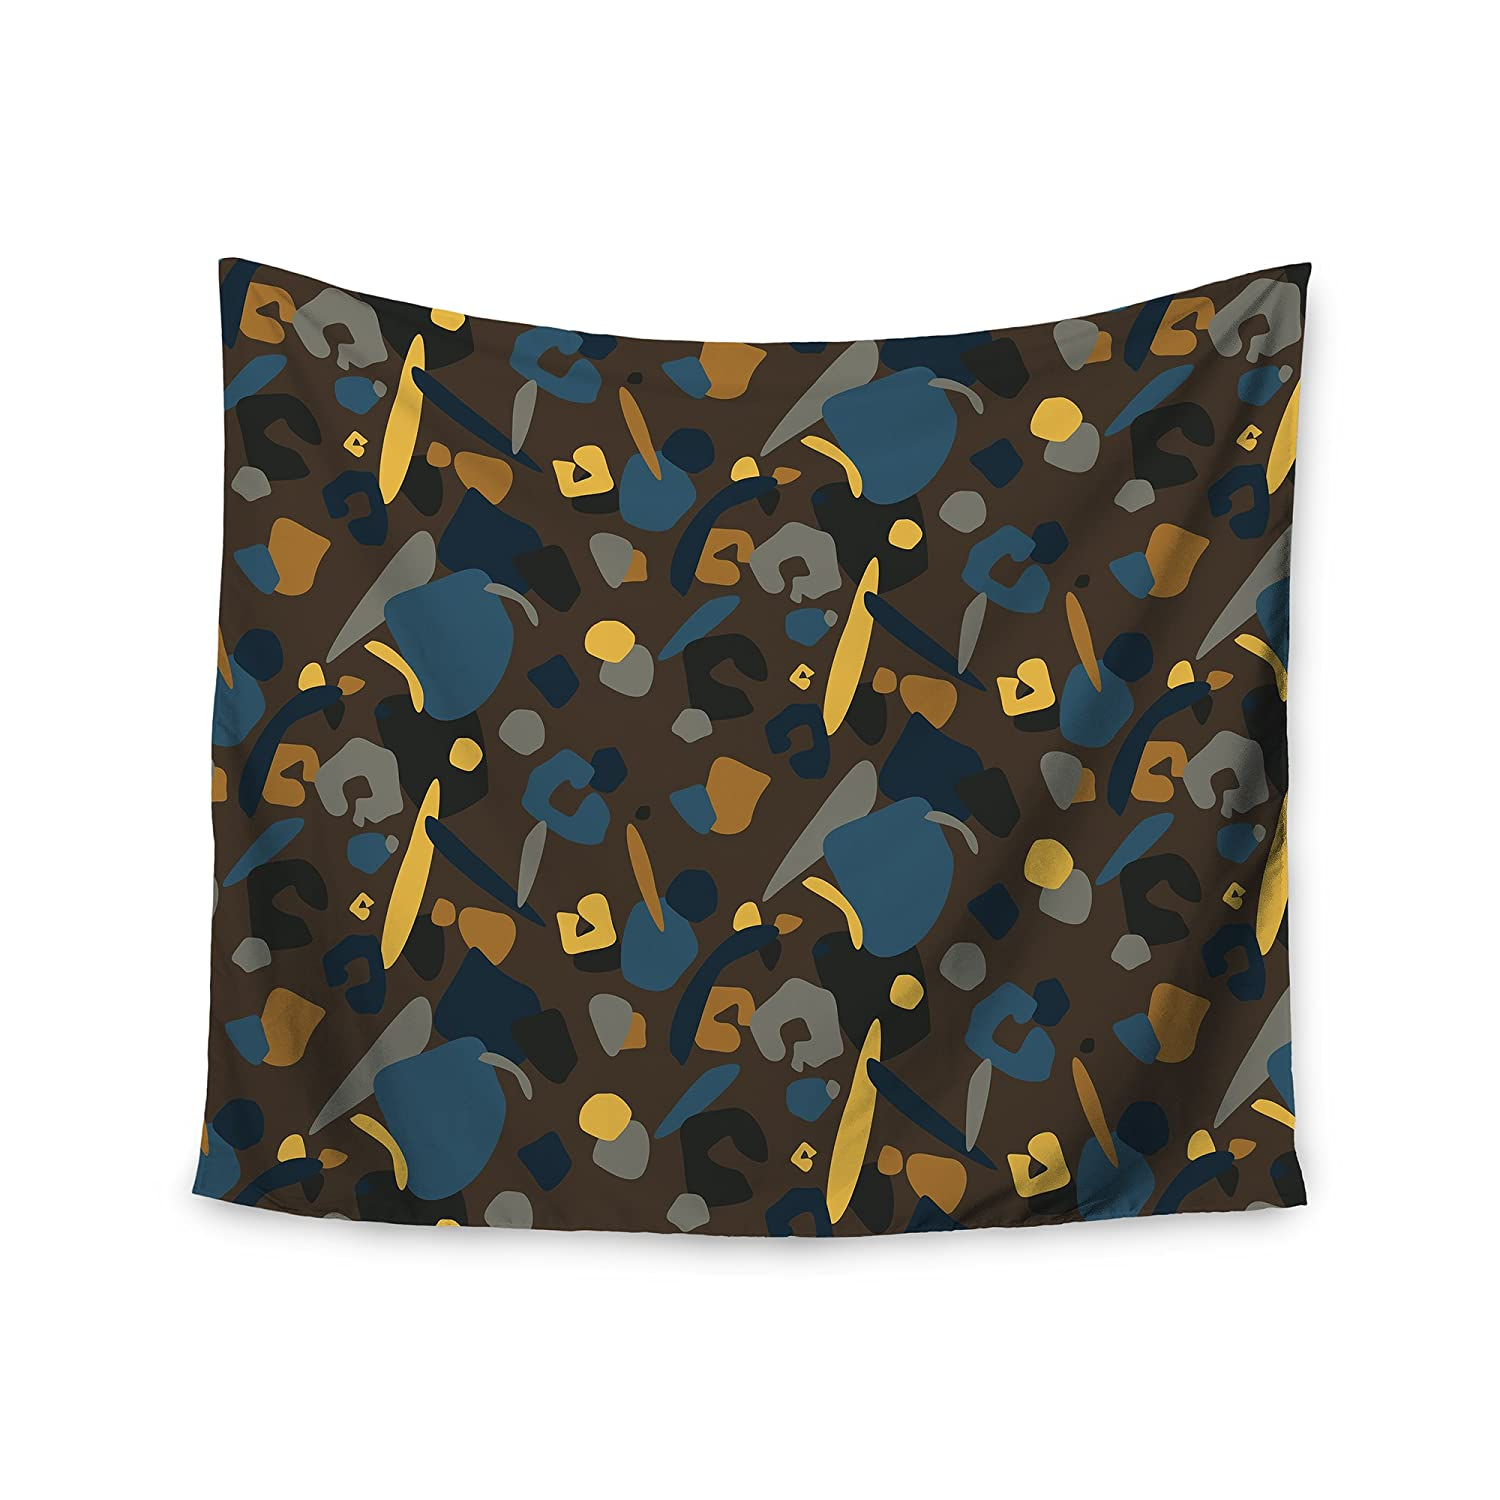 Kess InHouse Luvprintz Abstract Leoparc Teal Brown Wall Tapestry 51 x 60